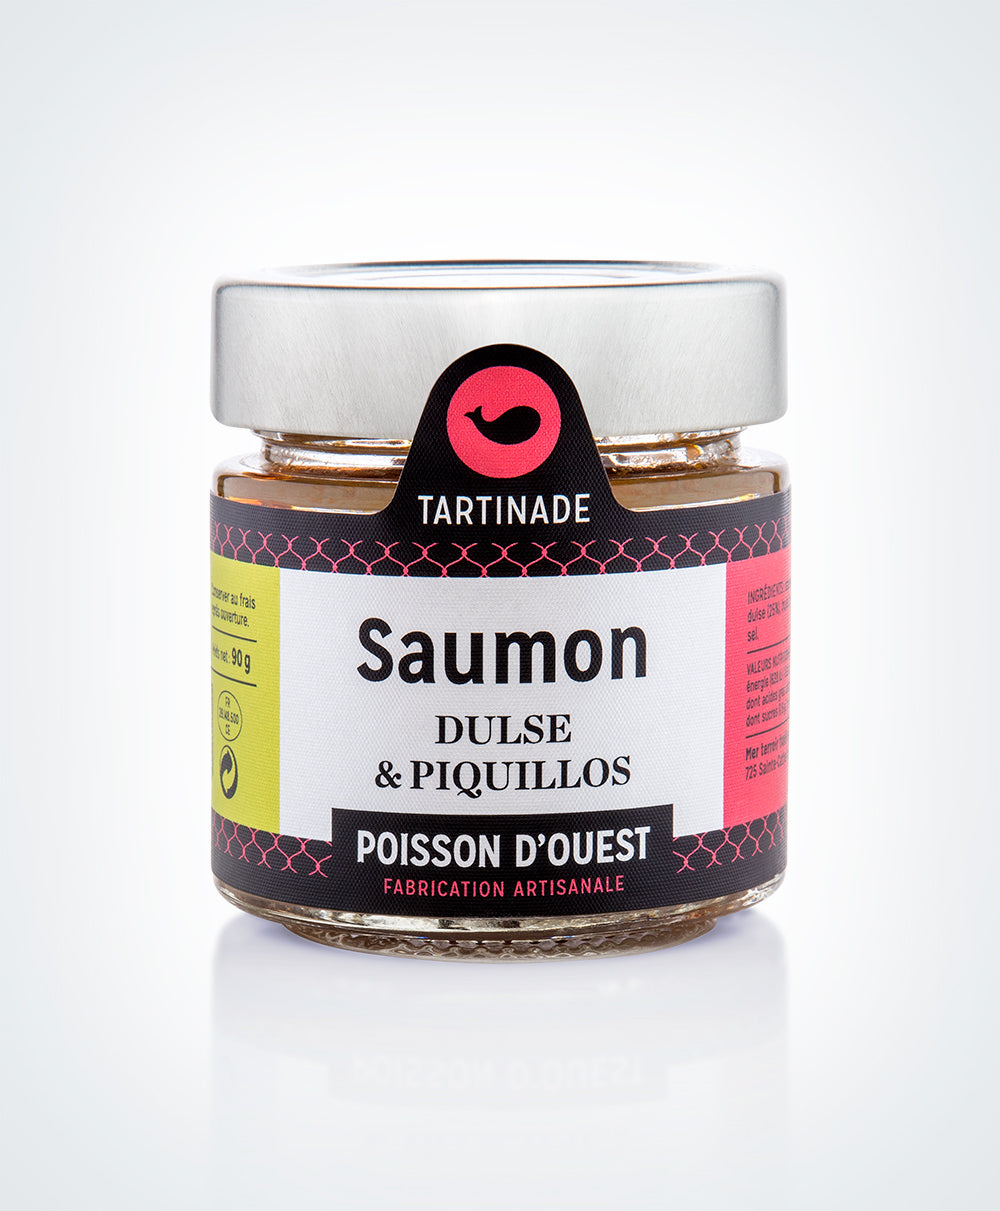 Salmon Spread with Dulse and Piquillo Peppers (90g)